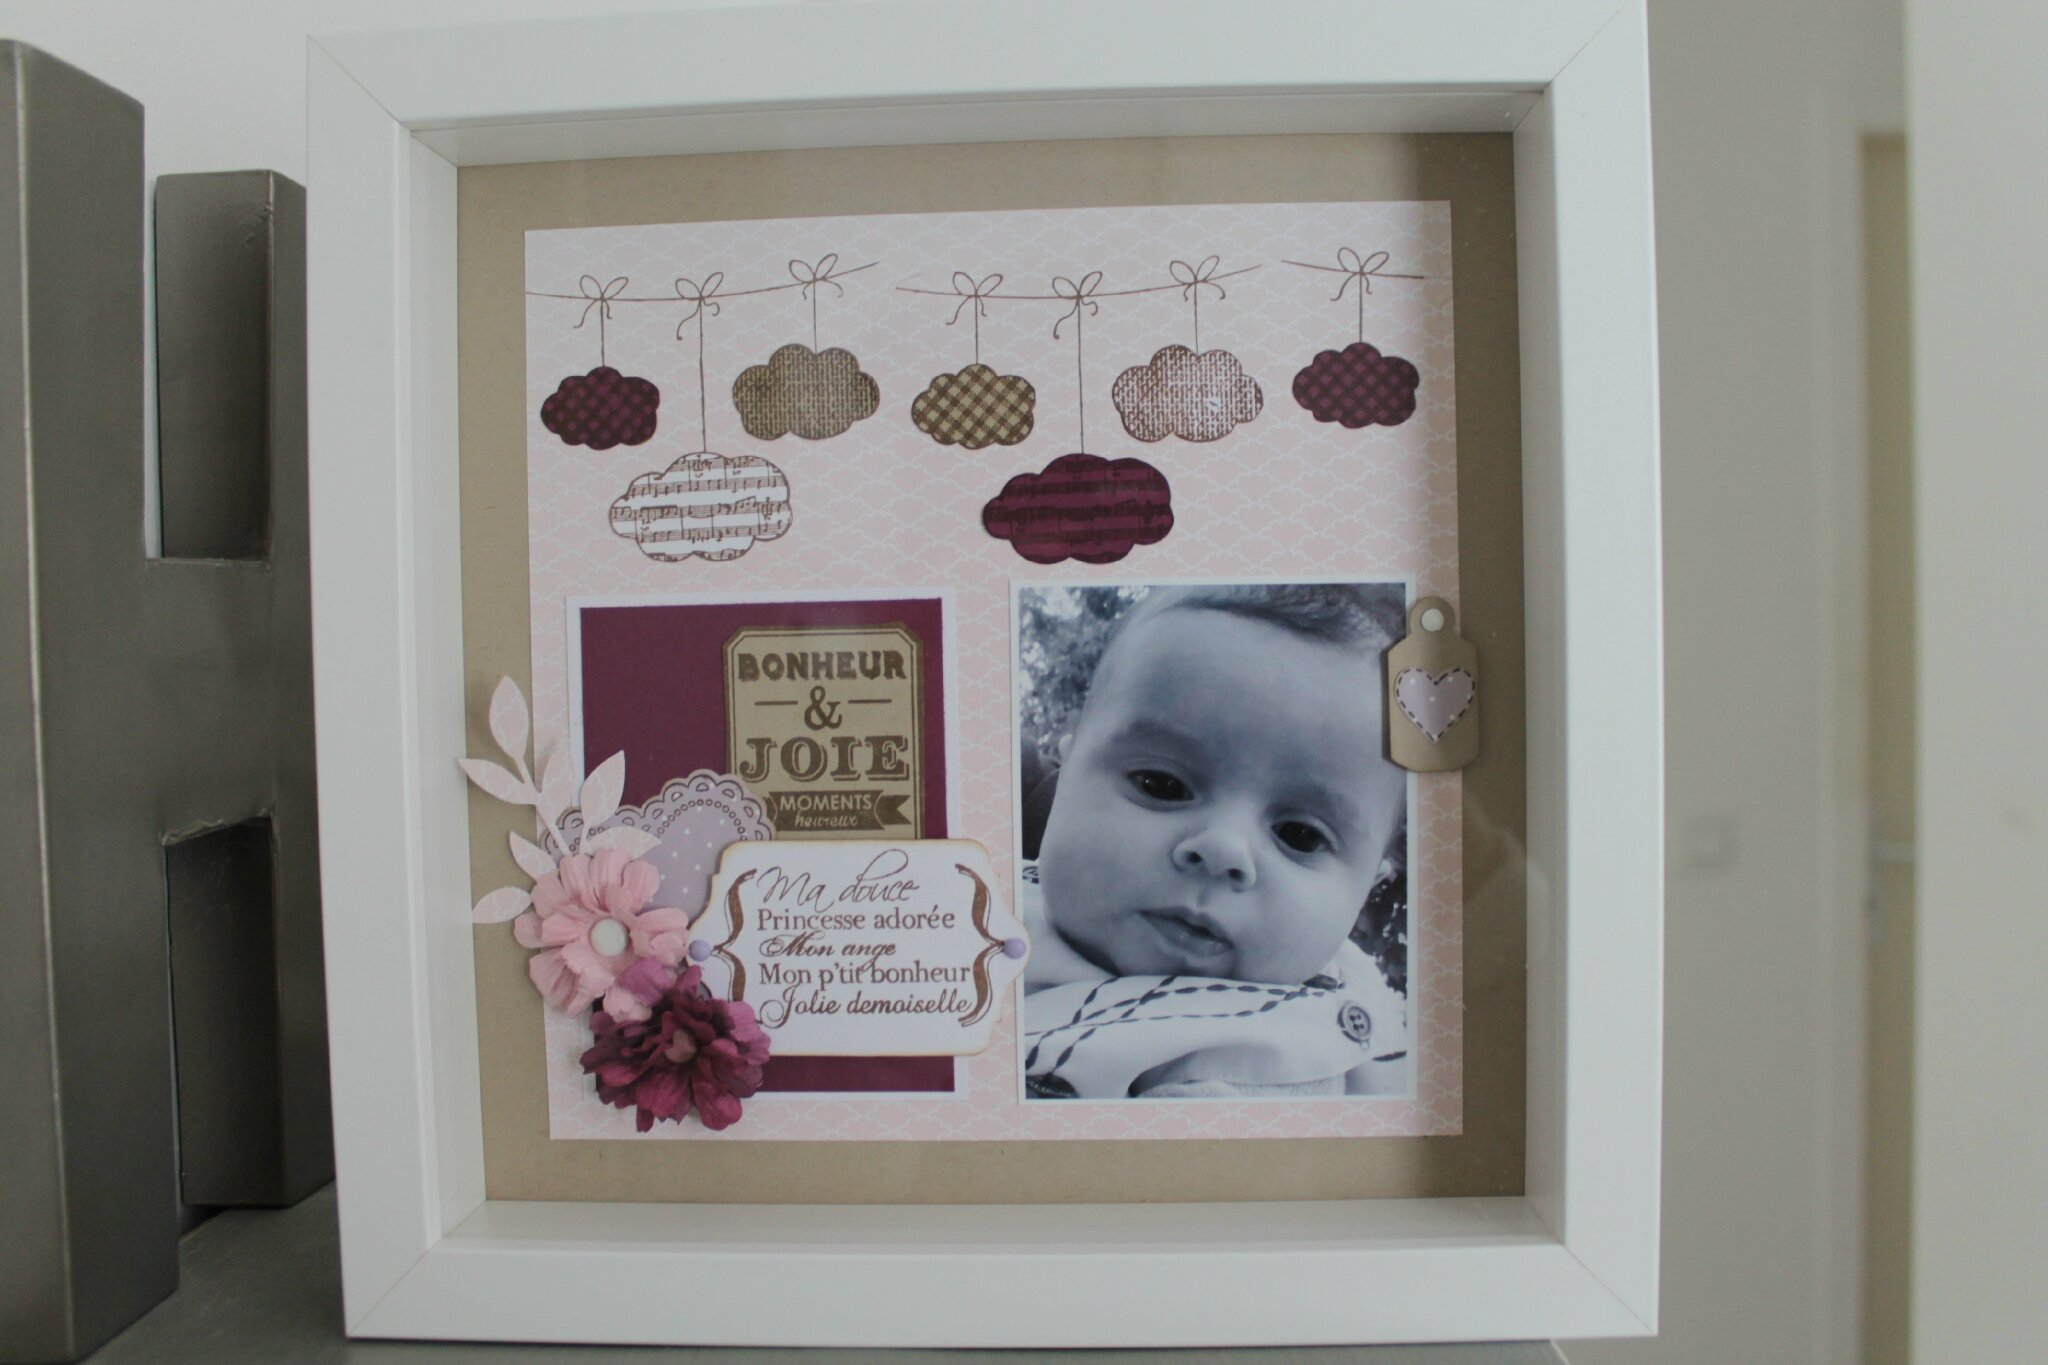 Chambre Bebe Garcon Winnie L Ourson : Scrapbooking cadre photo bebe